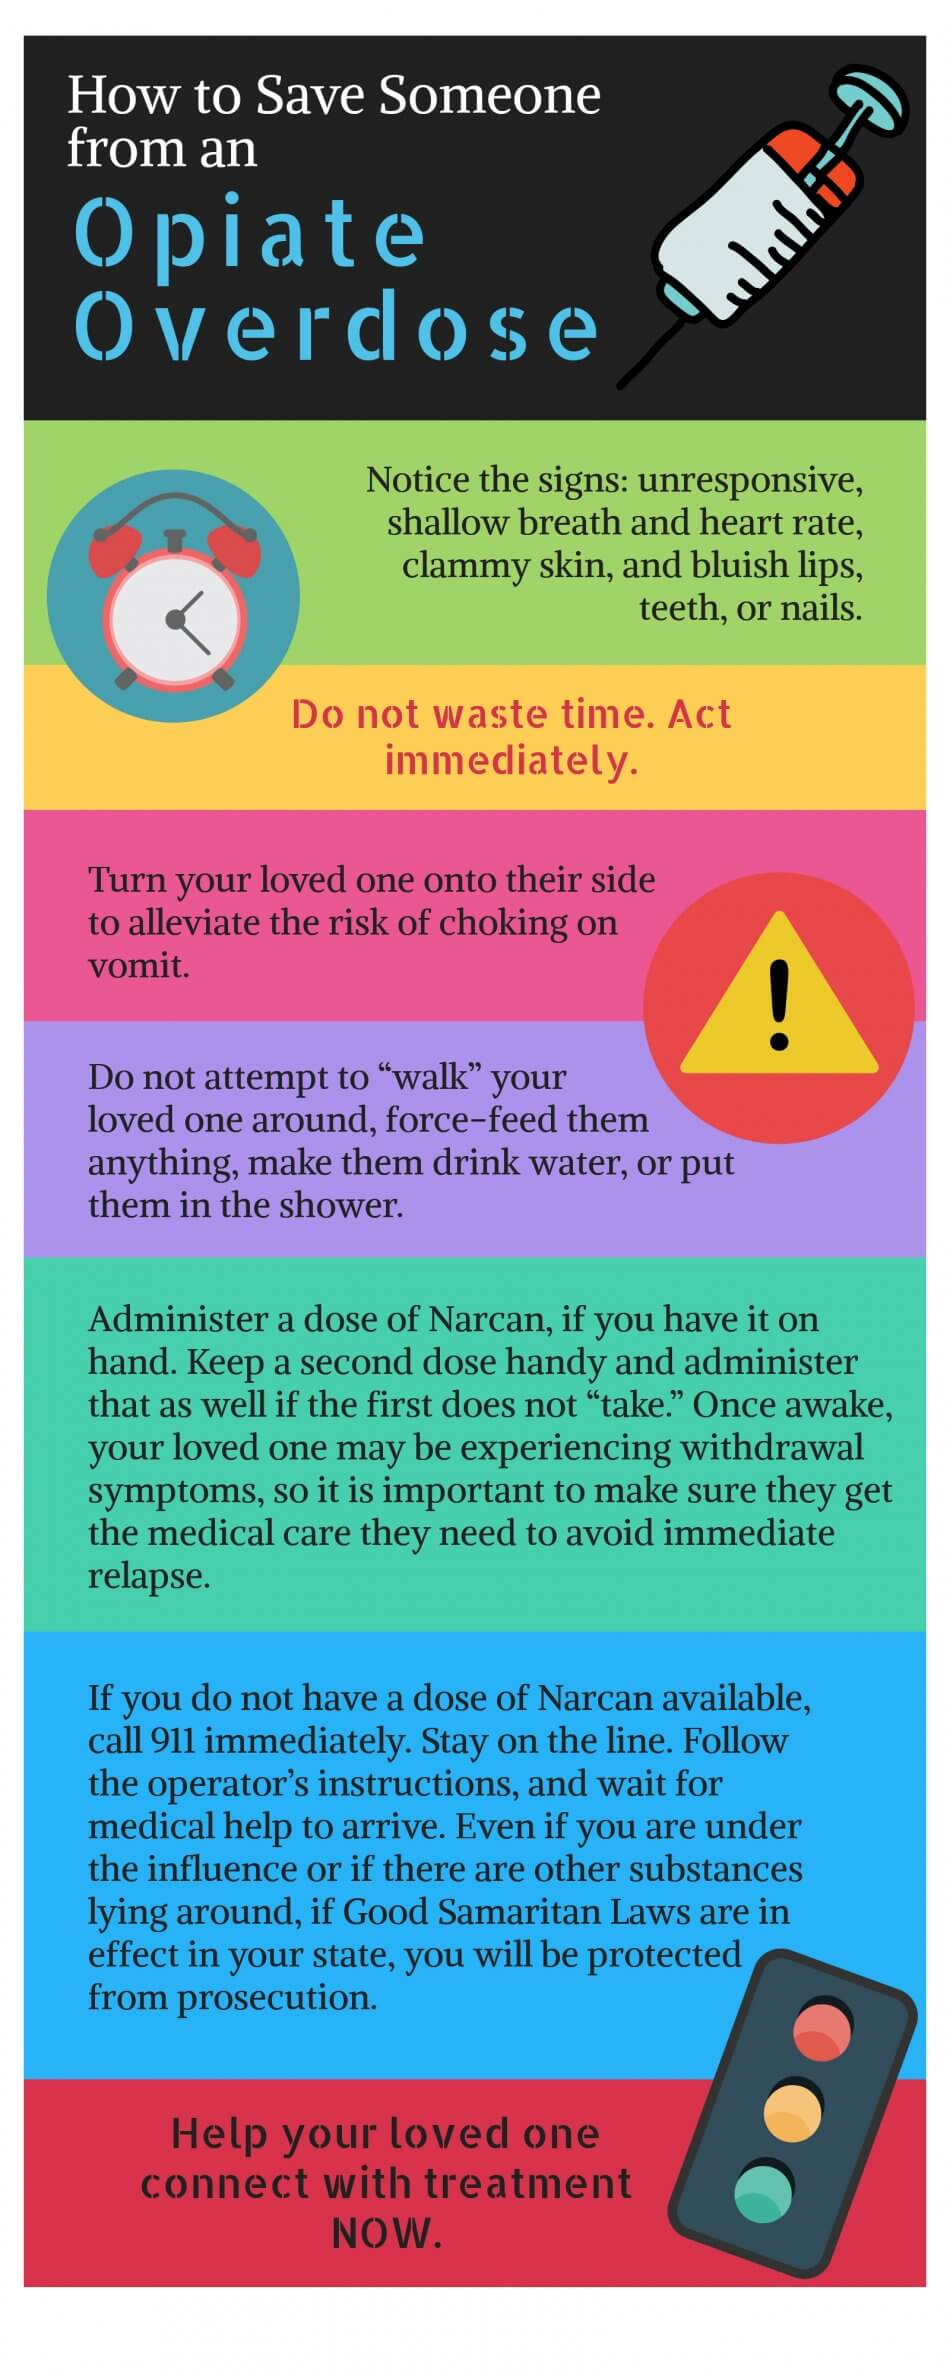 infographic on how to save someones life from an opiate overdose